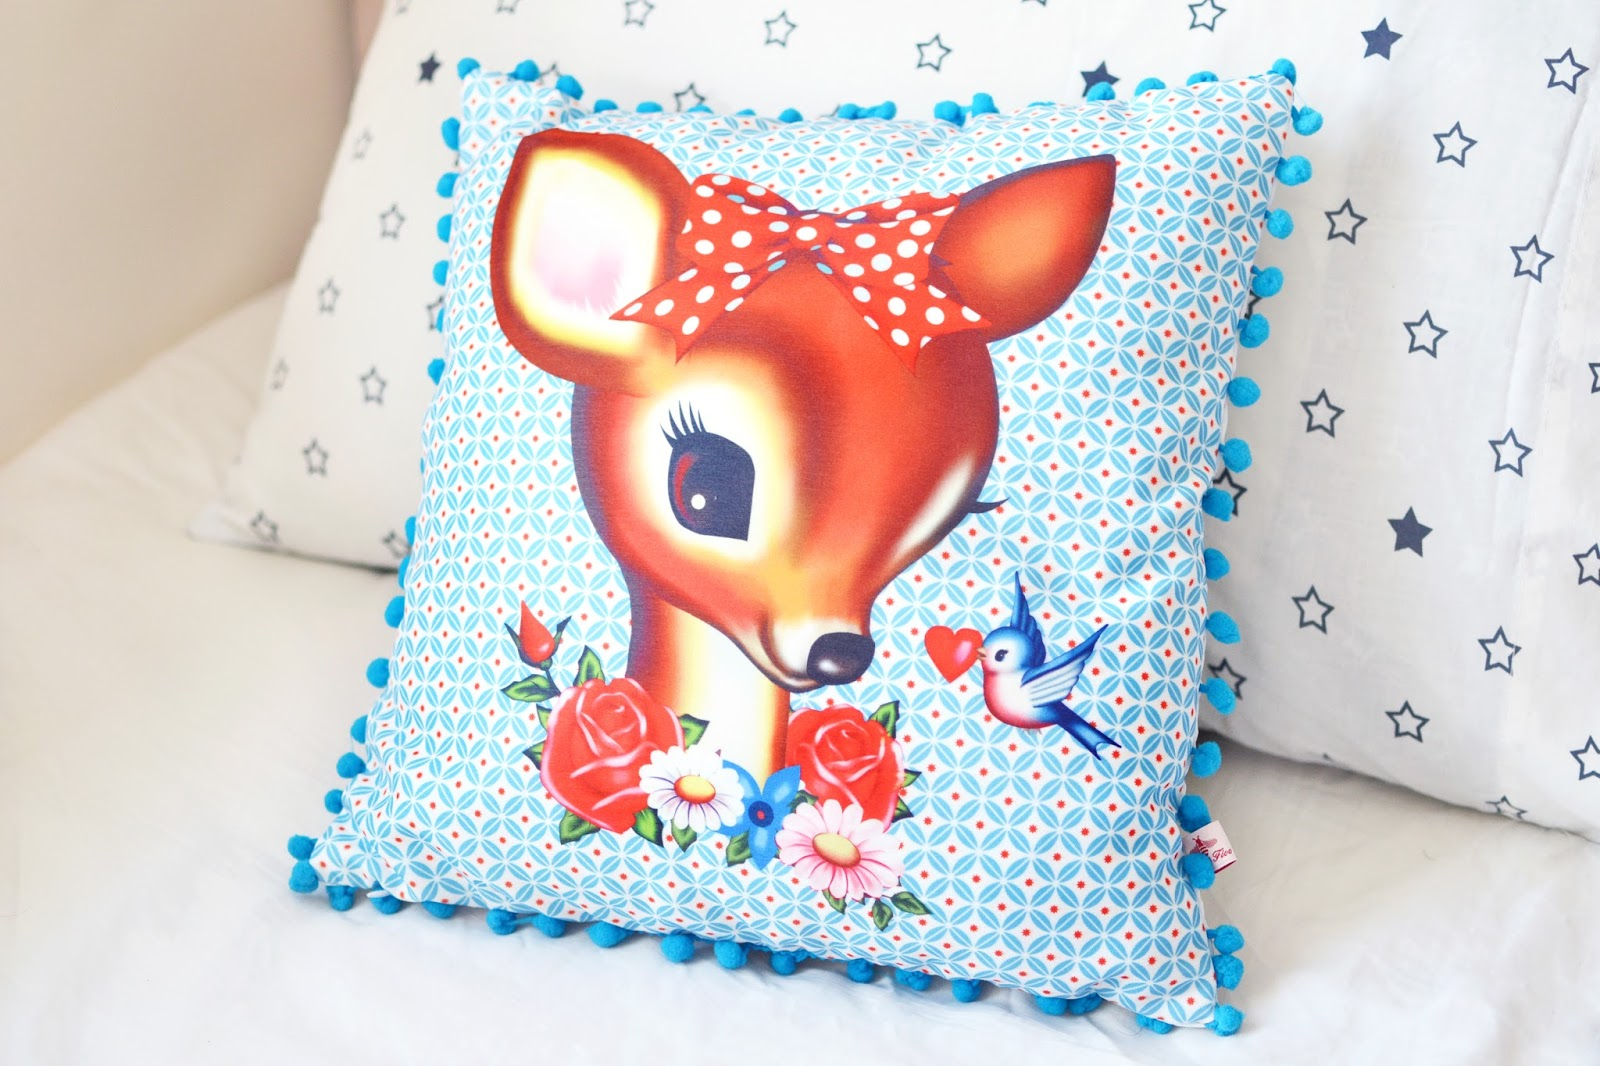 fawn cushion, cute cushion, cute homeware, quirky homeware